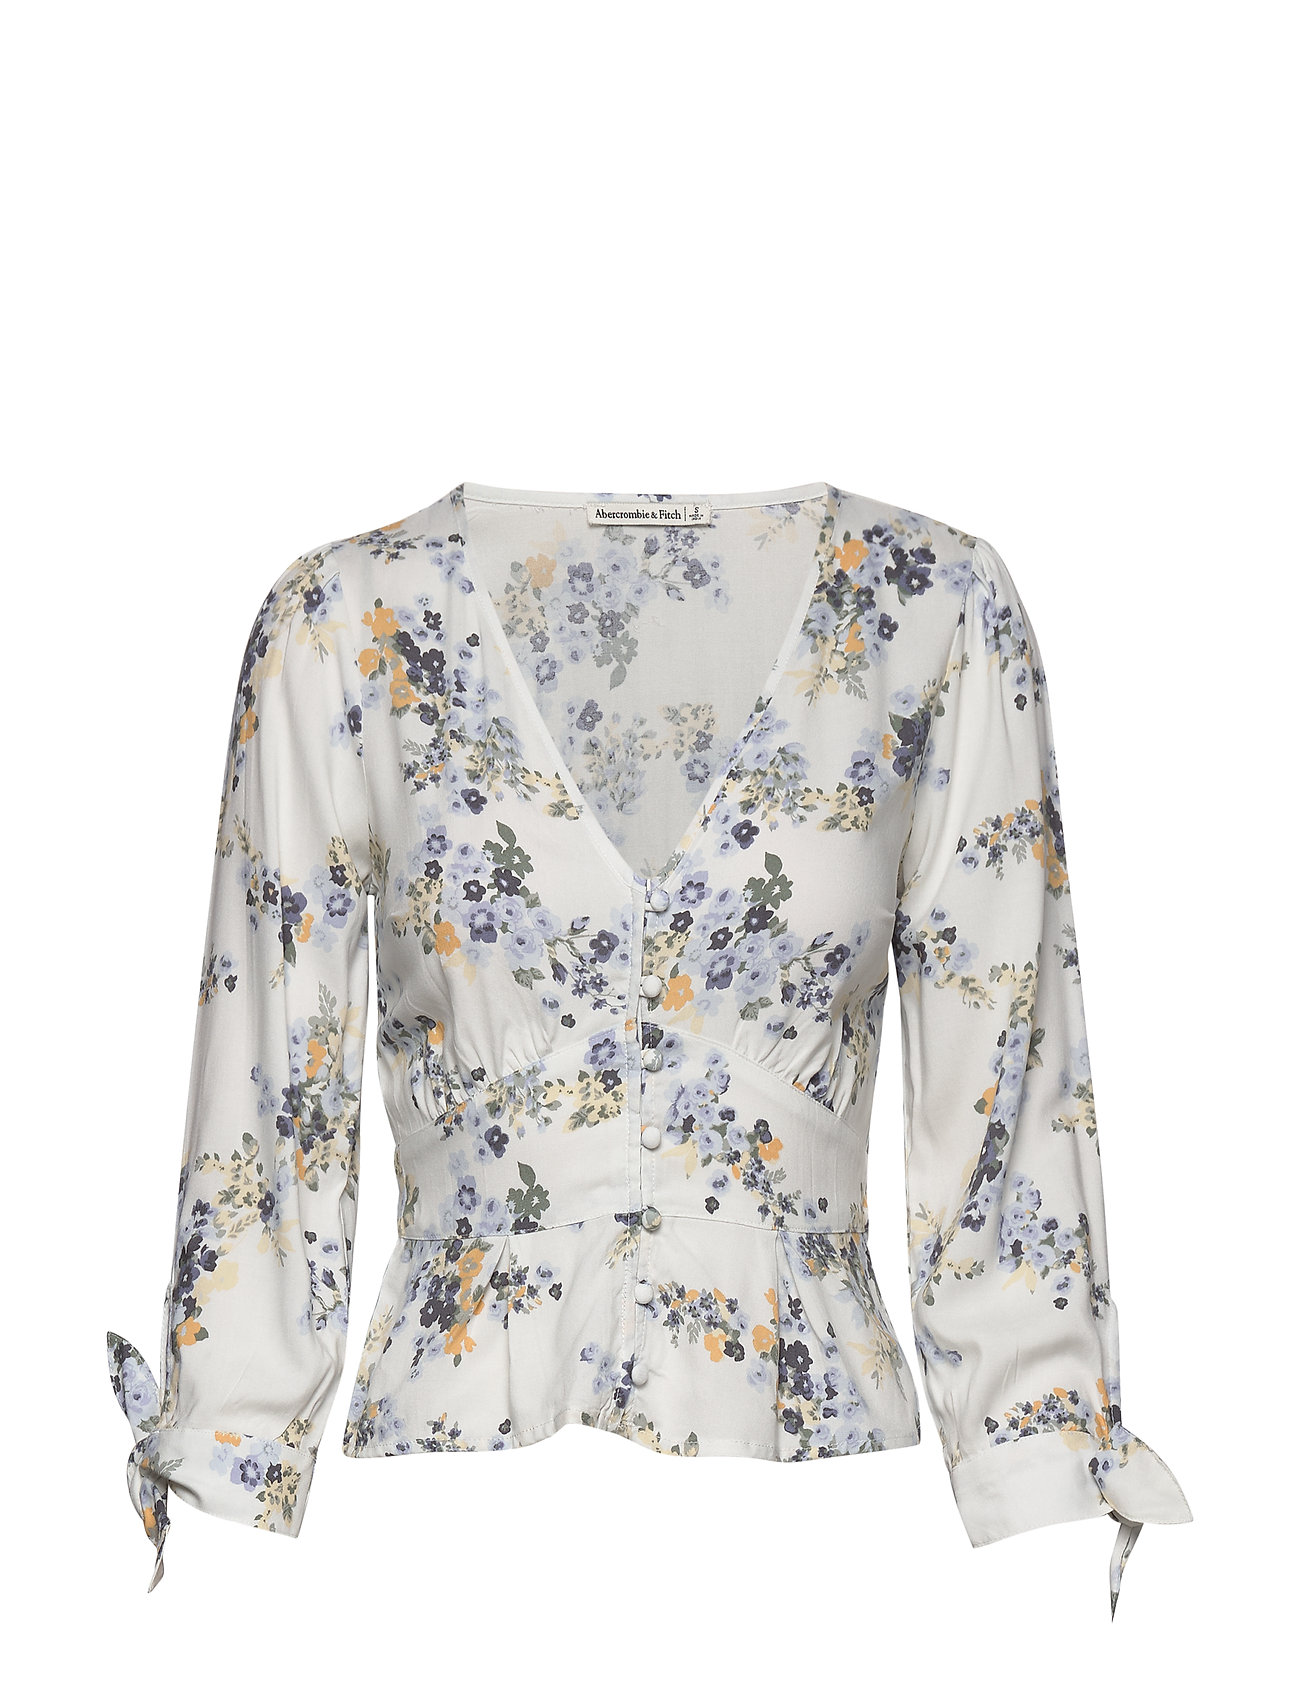 Abercrombie & Fitch Mimosa Top - WHITE PATTERN